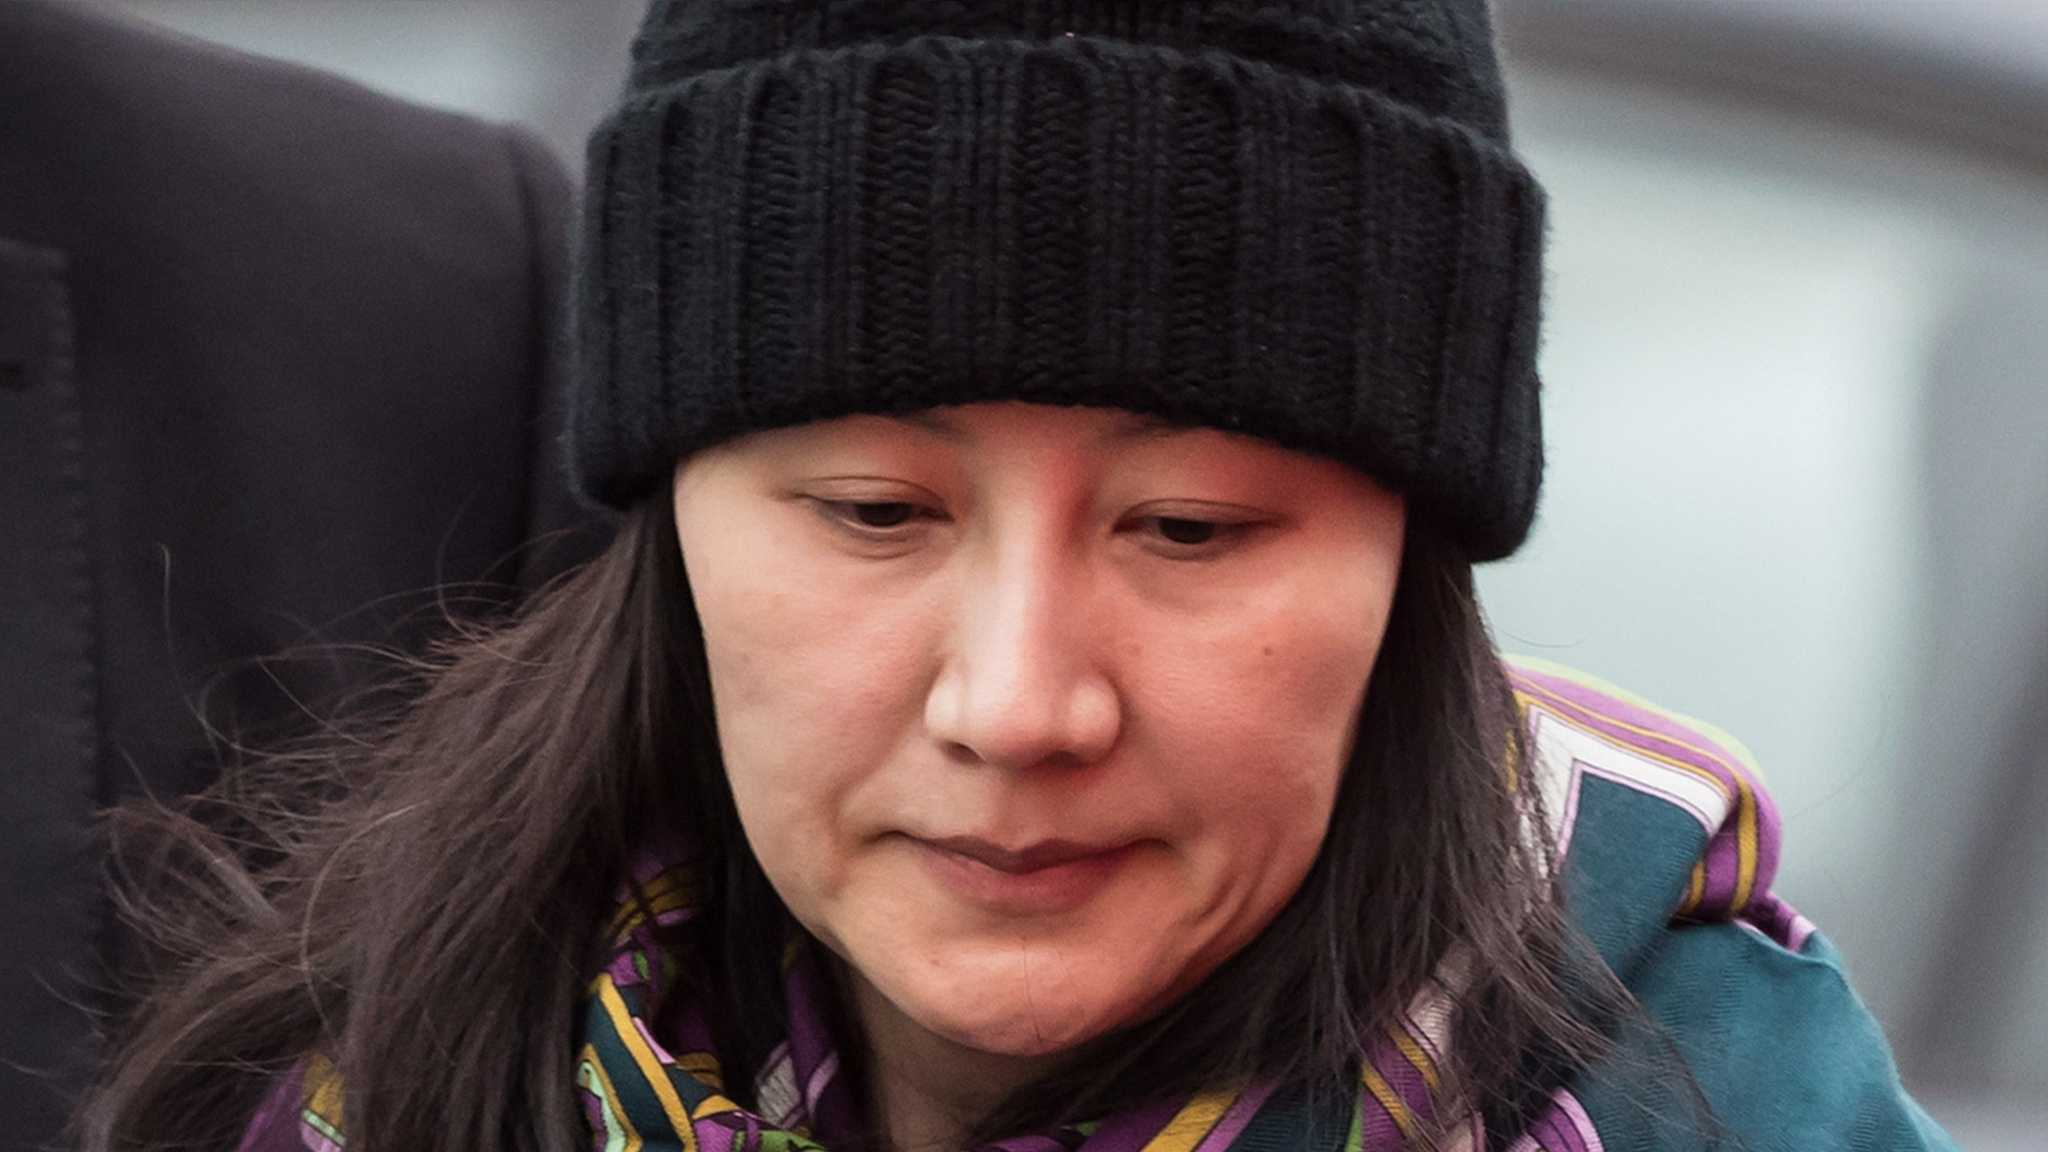 After China protests, Canada and U.S. assure 'apolitical' judicial process for Huawei CFO